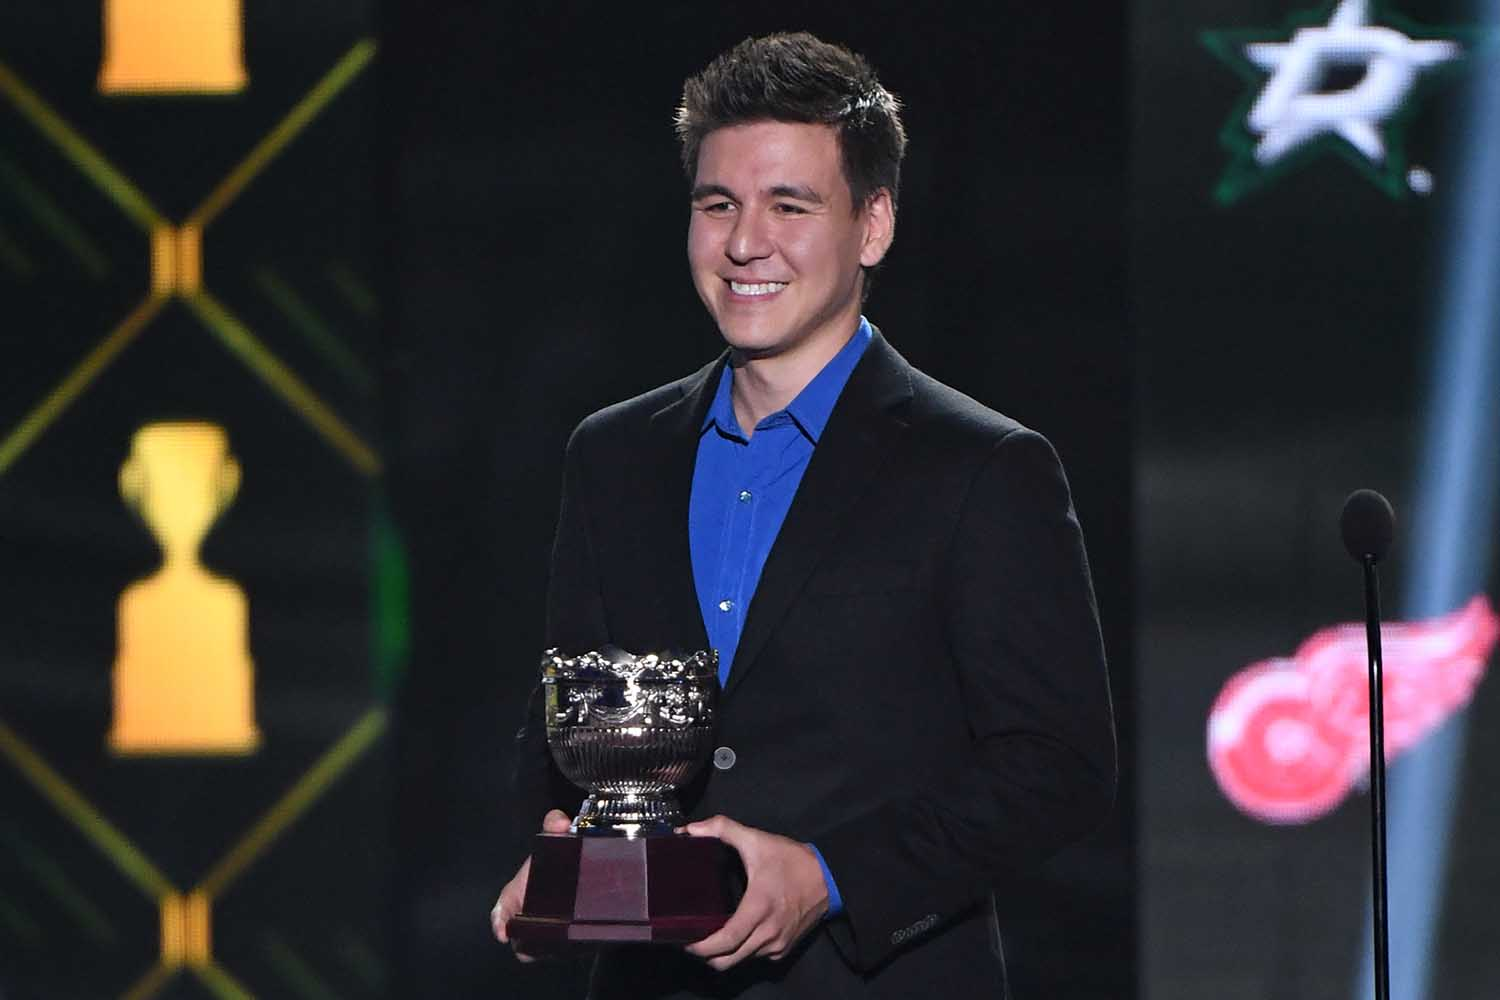 Jeopardy Champ James Holzhauer Hints He May Have Lost on